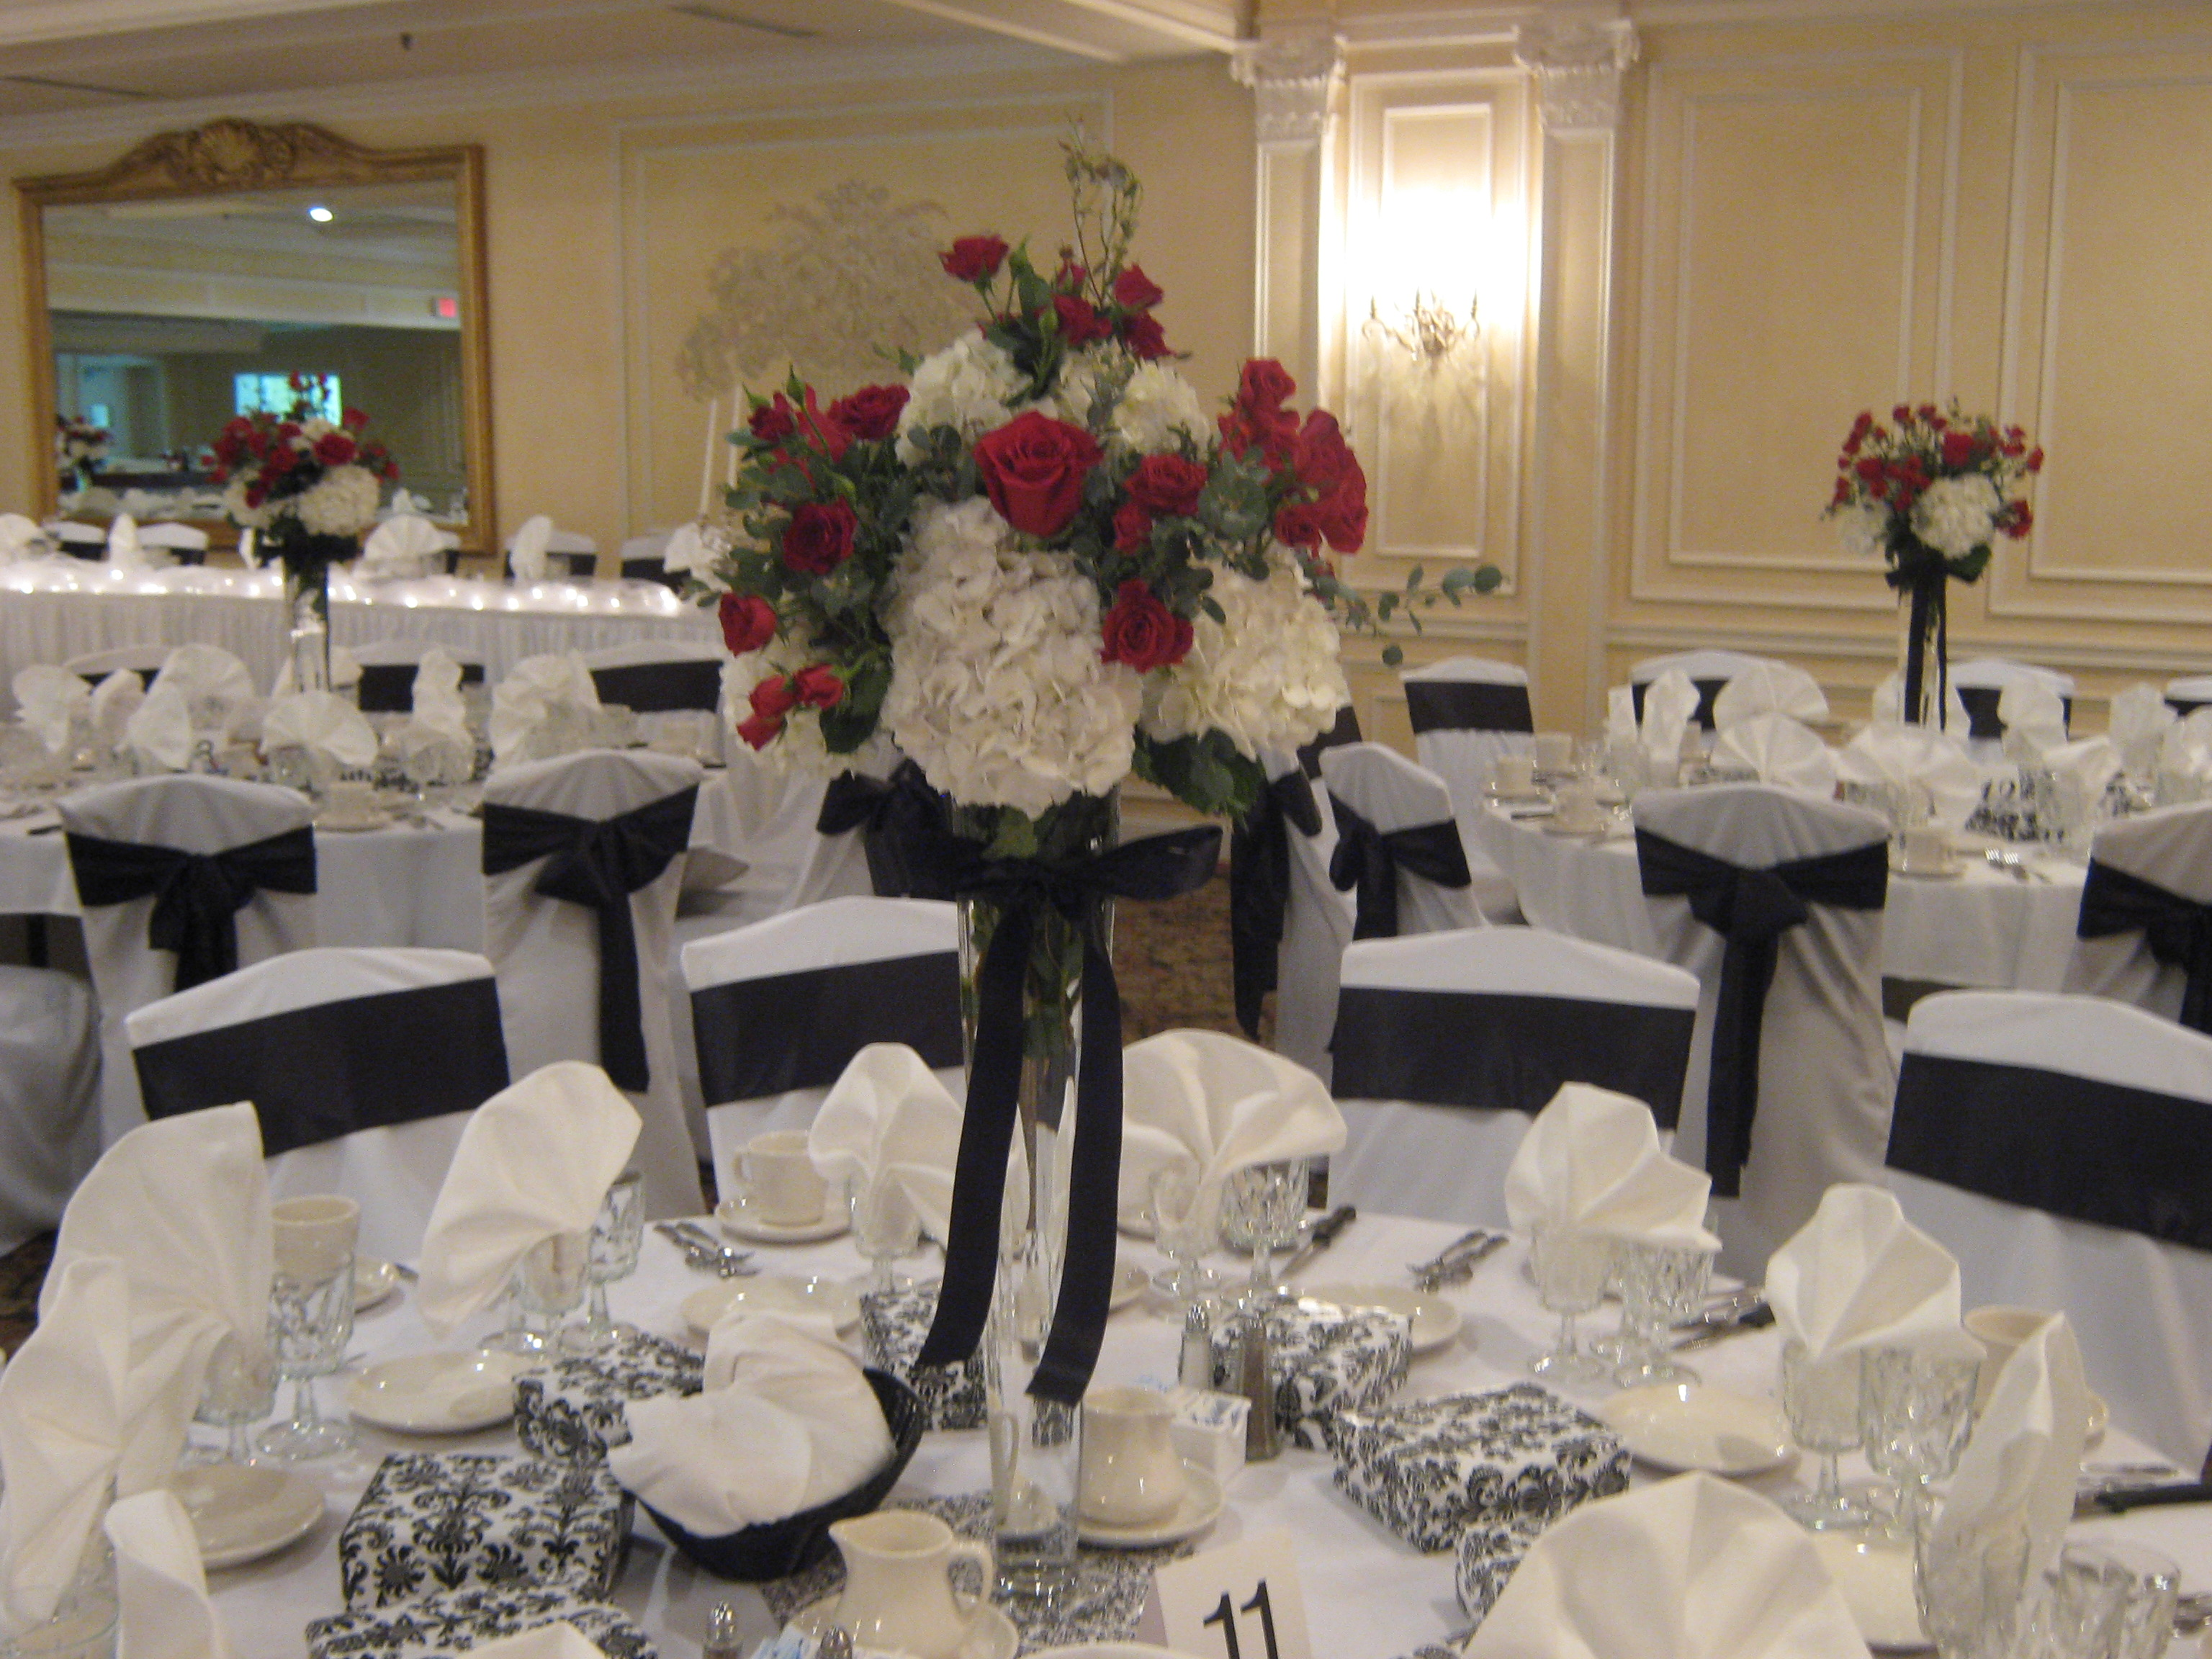 Red and black wedding flowers buffalo wedding event flowers by wedding flowers williamsville mightylinksfo